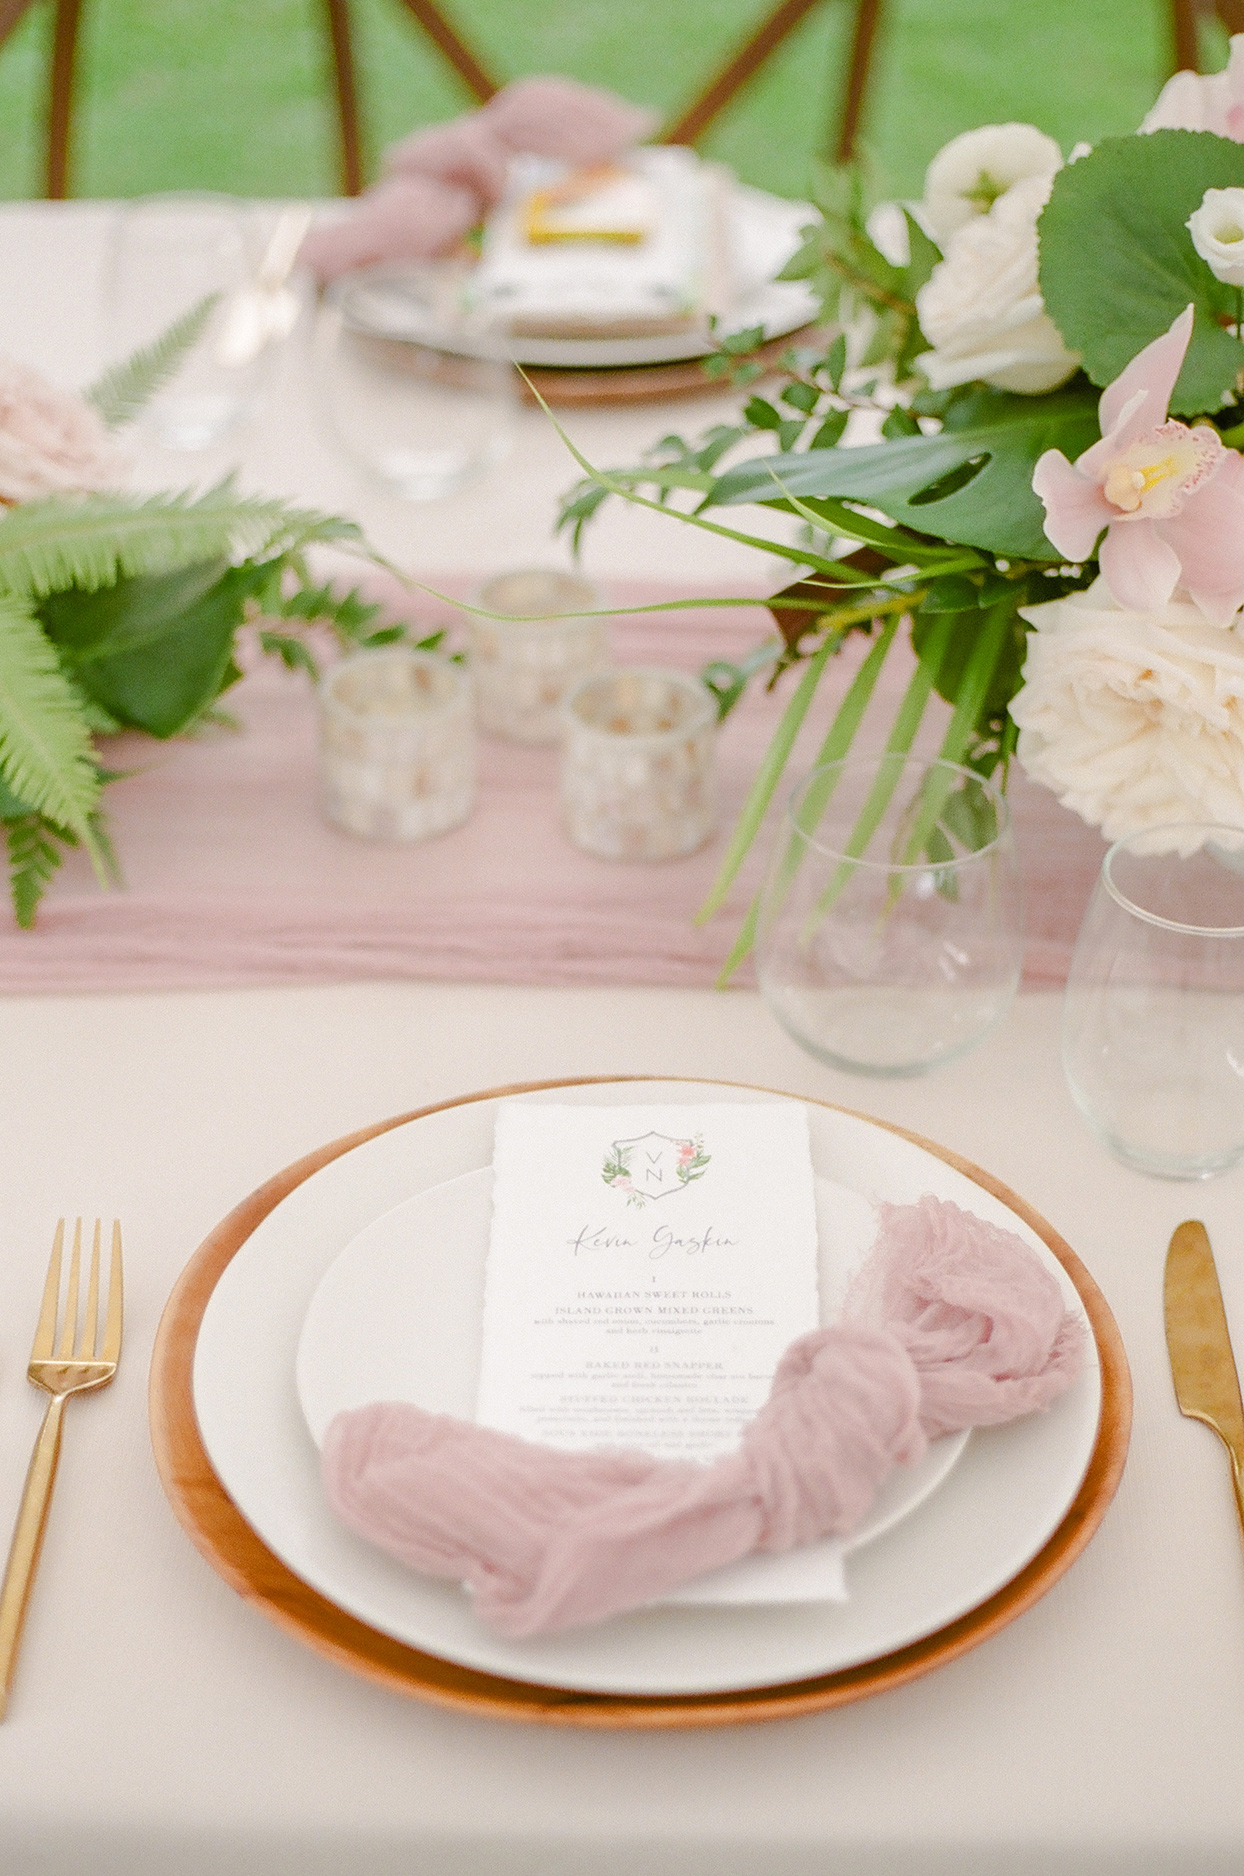 vanessa nathan wedding pastel pink and gold place setting with dinner menu